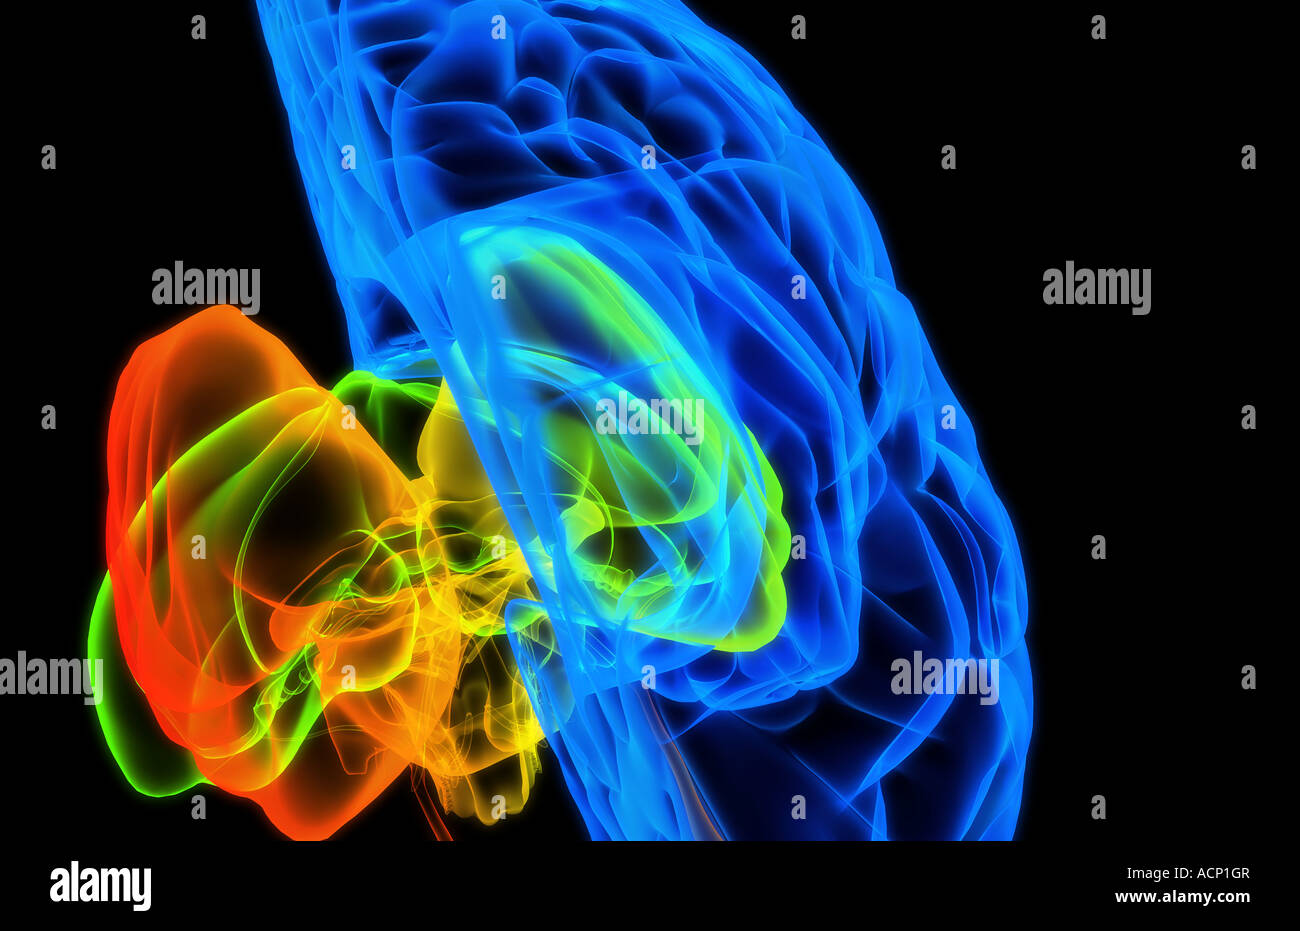 The brain - Stock Image